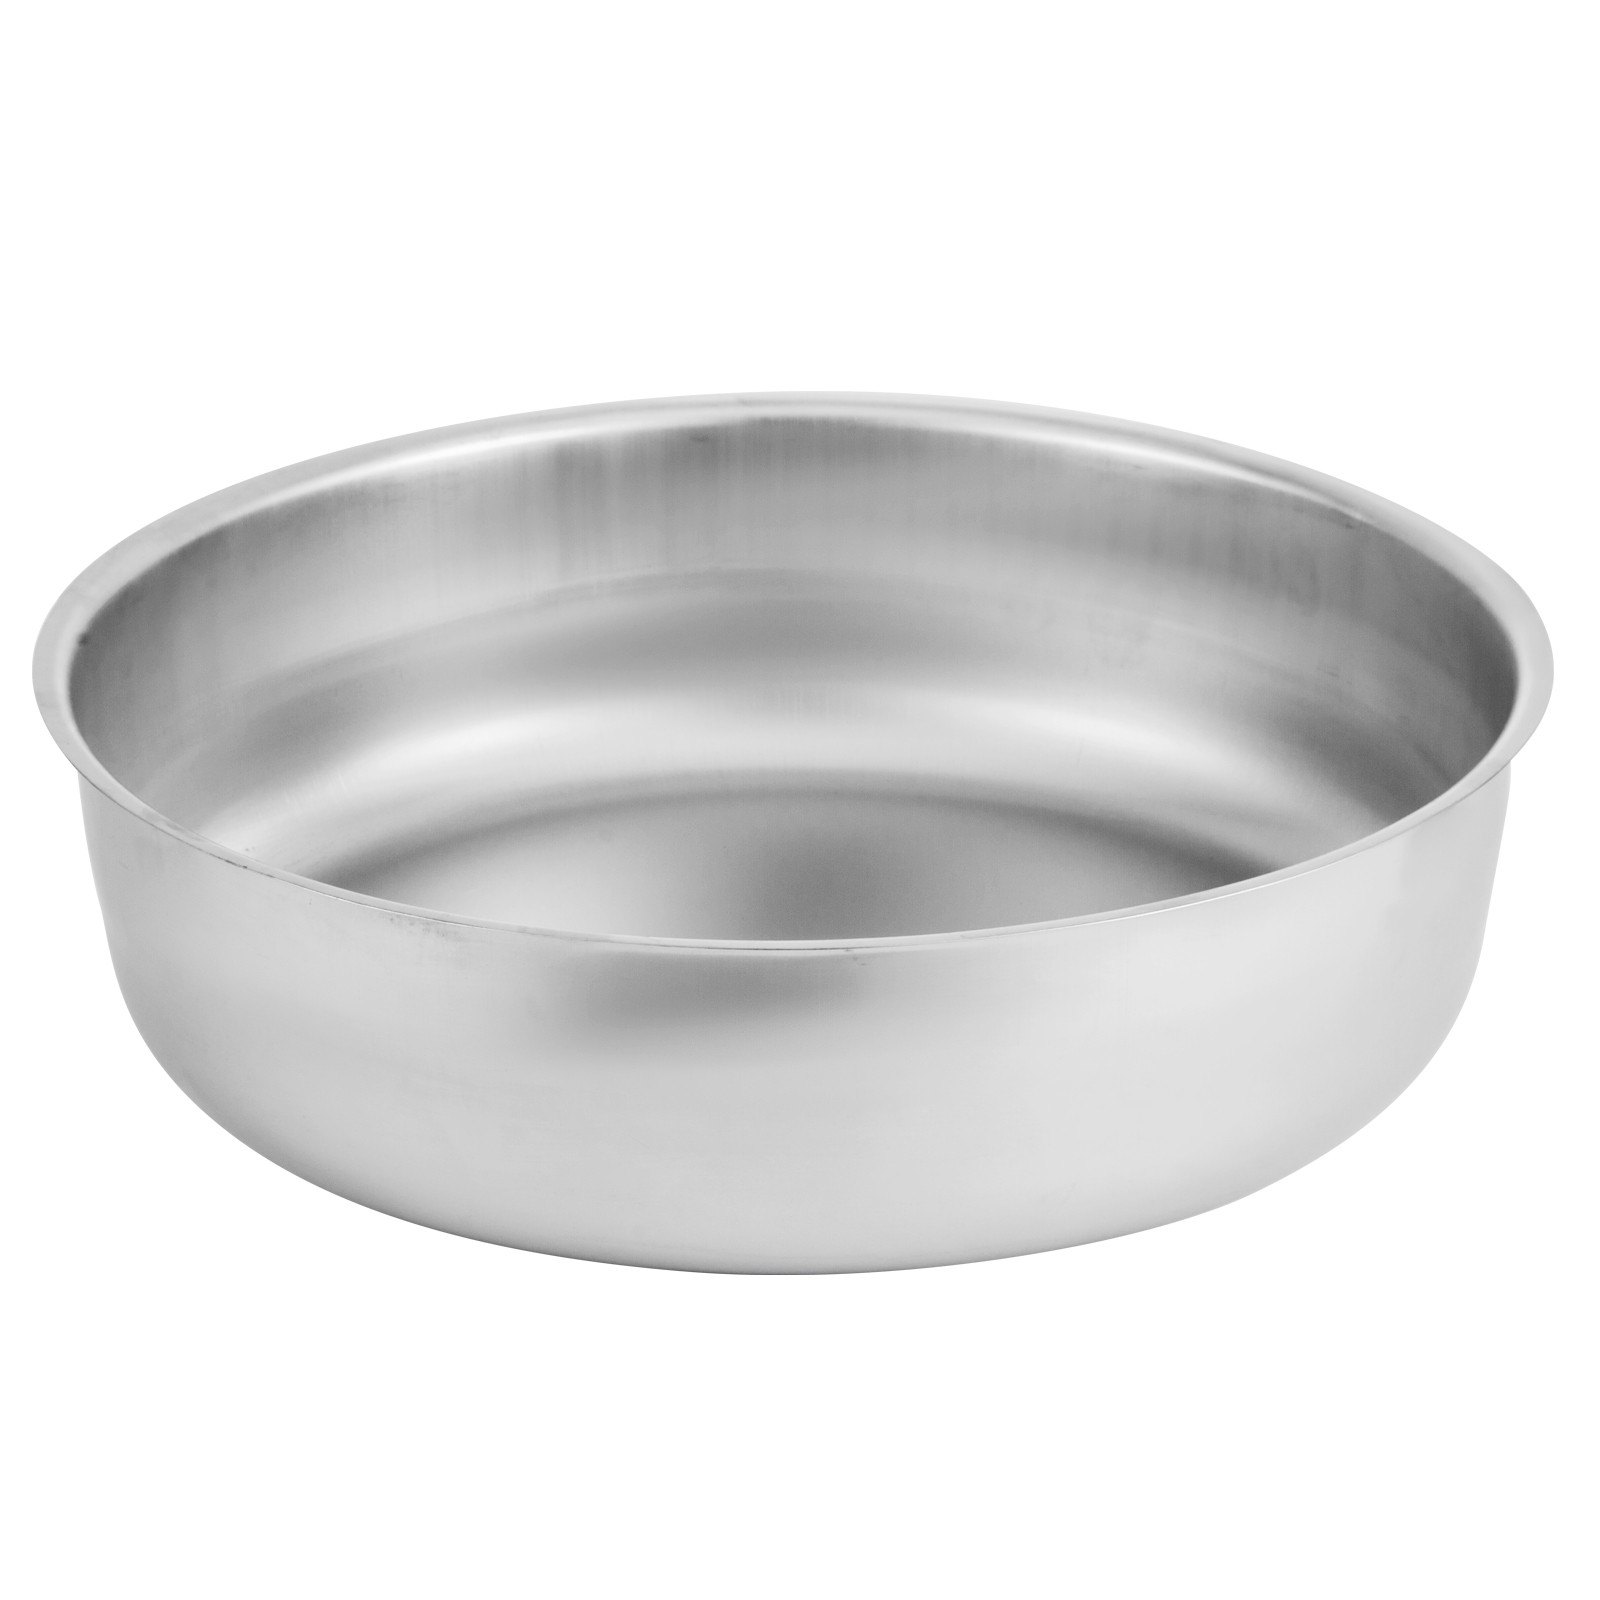 thumbnail 120 - Multi-Stainless-Steel-Chafing-Dish-Bain-Marie-Bow-Catering-Dish-Hotpot-Server